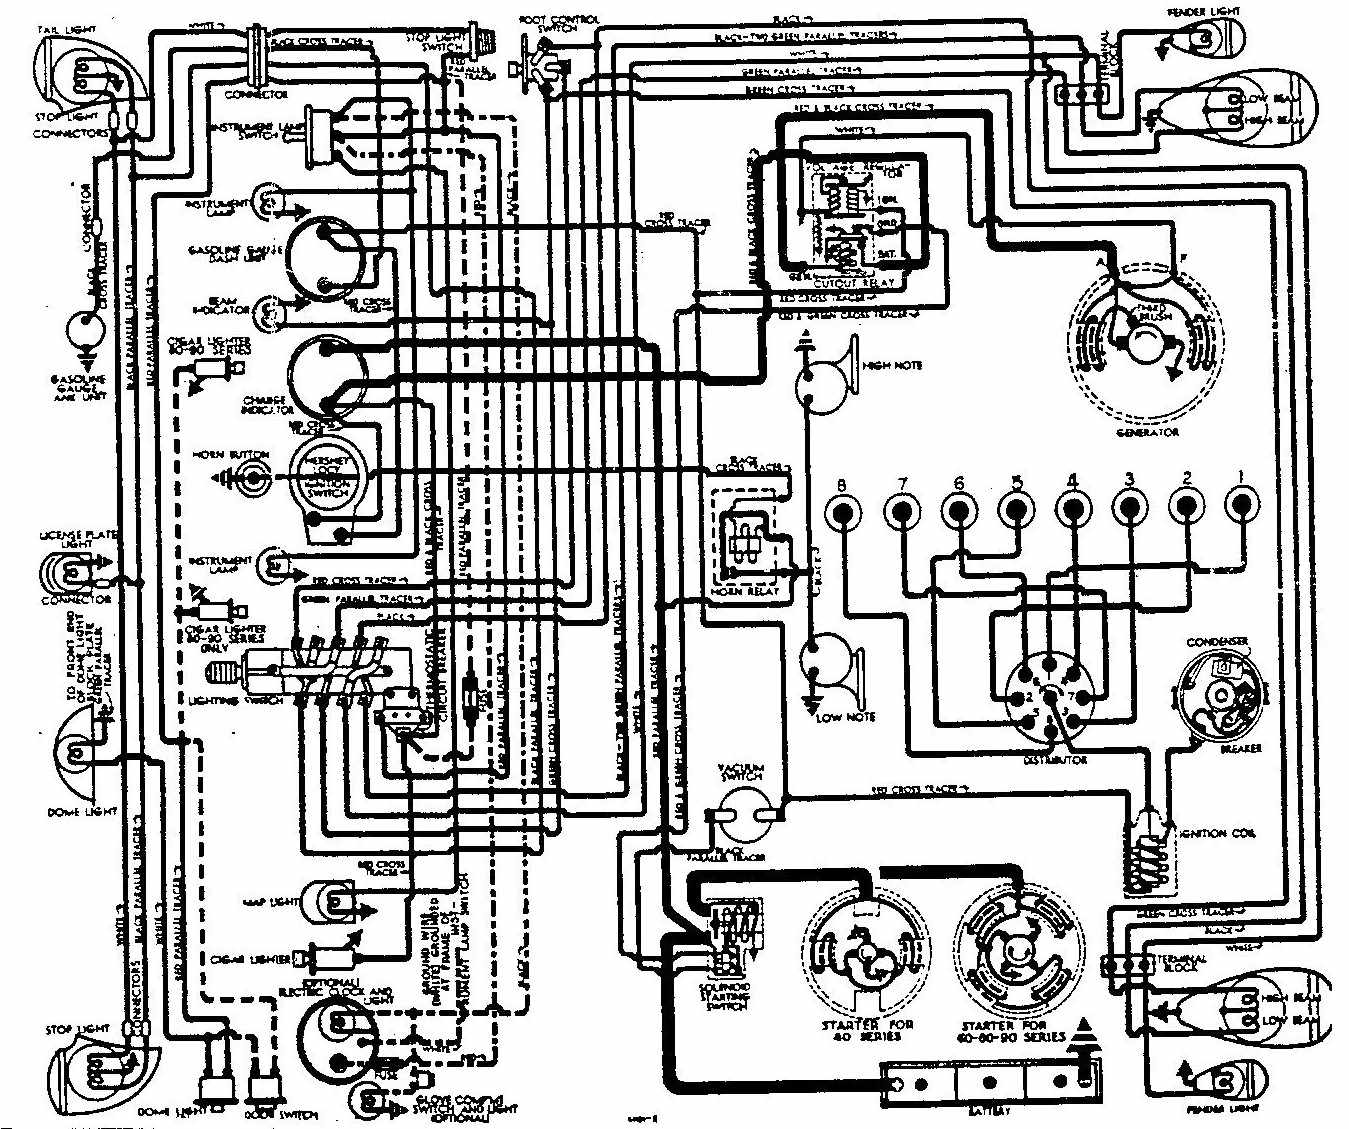 Images For 1948 Ford Truck Wiring Diagram - Wiring Diagram on 54 ford galaxie, 54 ford anglia, 54 ford ltd, 54 ford tudor, 54 ford f100, 54 ford hot rod, 54 ford mercury, 54 ford fairlane, 54 ford mustang, 54 ford crestline, 54 ford thunderbird, 54 ford monterey, 54 ford crown victoria, 54 ford deluxe, 54 ford coupe, 54 ford convertible, 54 ford 2 door sedan, 54 ford pickup, 54 ford mainline, 54 ford econoline,